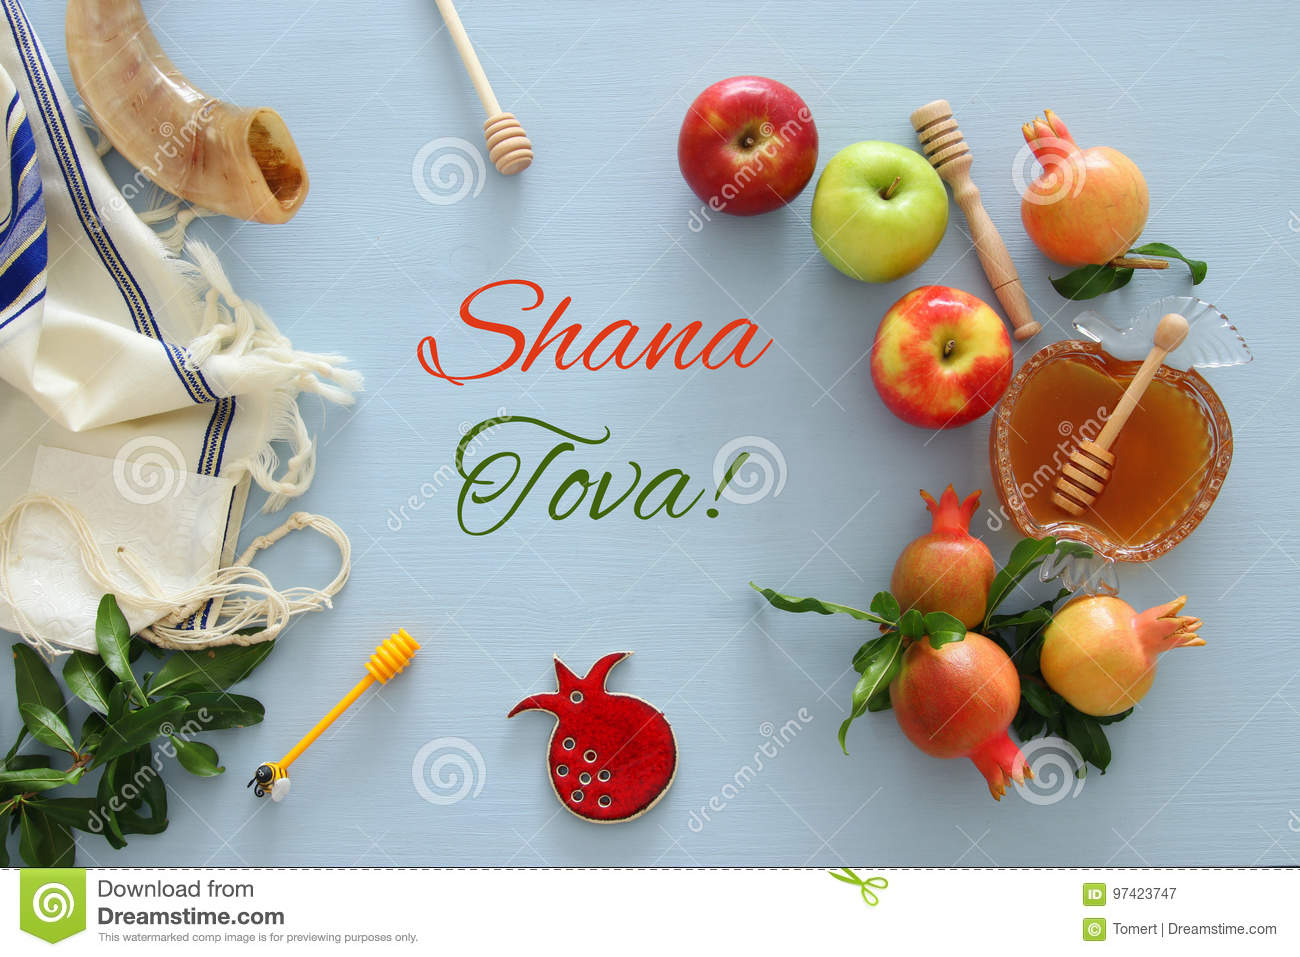 Rosh hashanah x28jewish new year holiday x29 concept stock rosh hashanah x28jewish new year holiday x29 concept traditional symbols text shana tova means happy new year in hebrew m4hsunfo